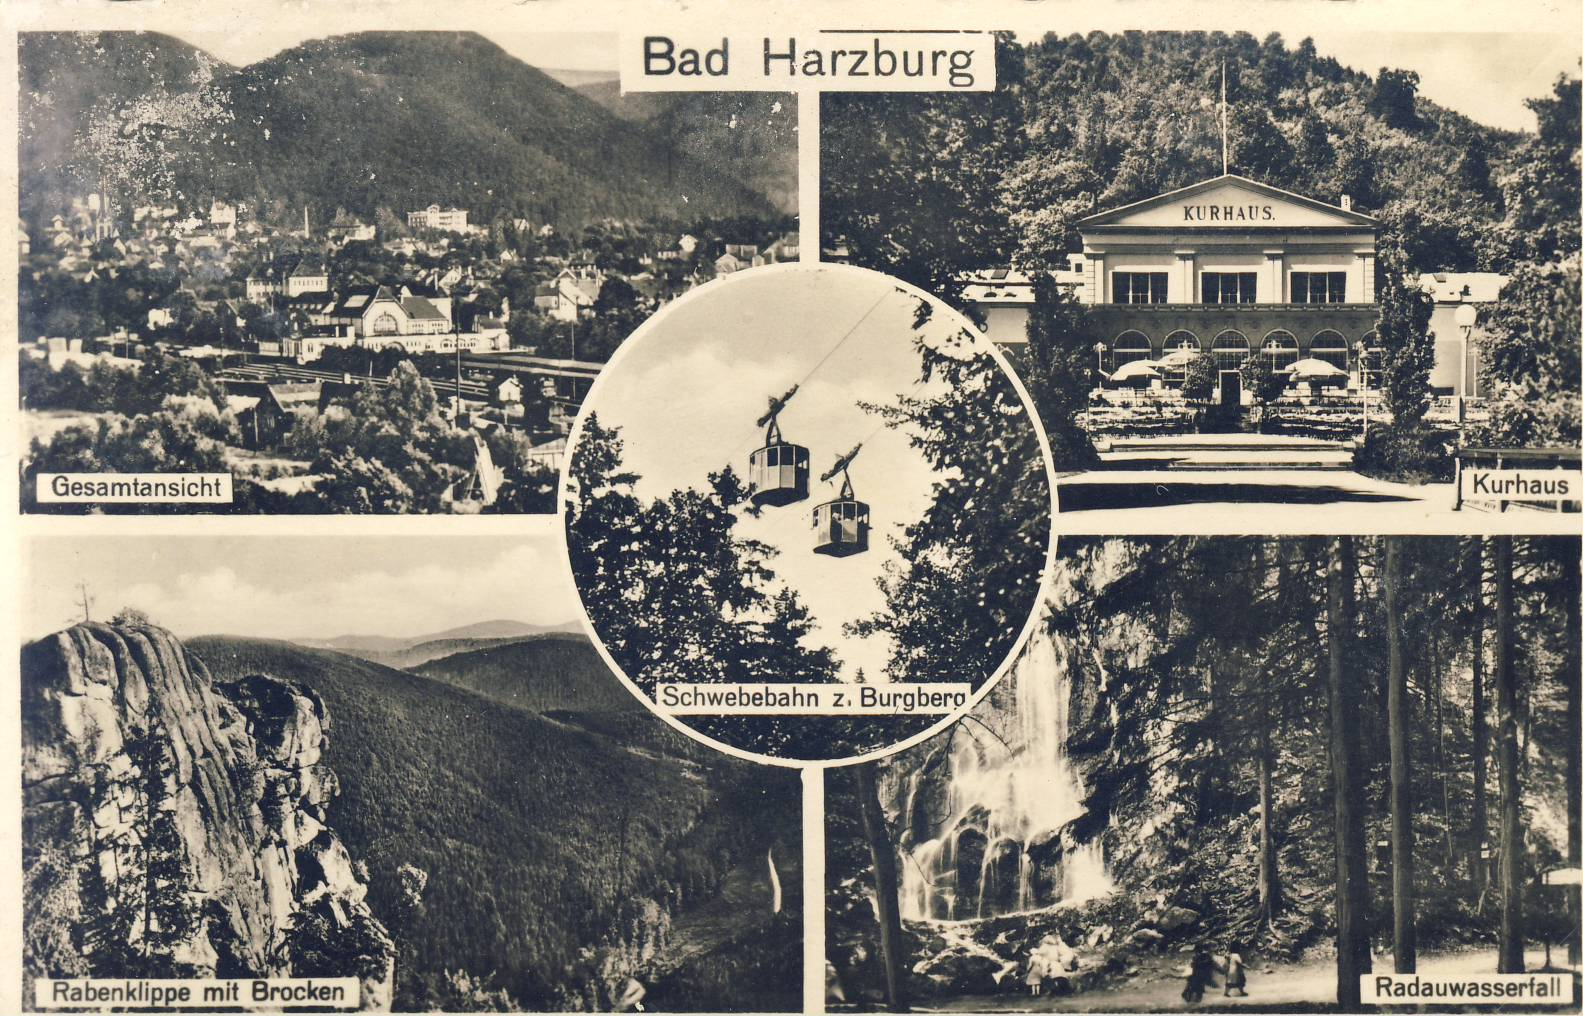 BAD BARZBURG 1949 Old Postcard refP9 Pre-owned used condition with name address and message on reverse with Deutsche Post stamps.